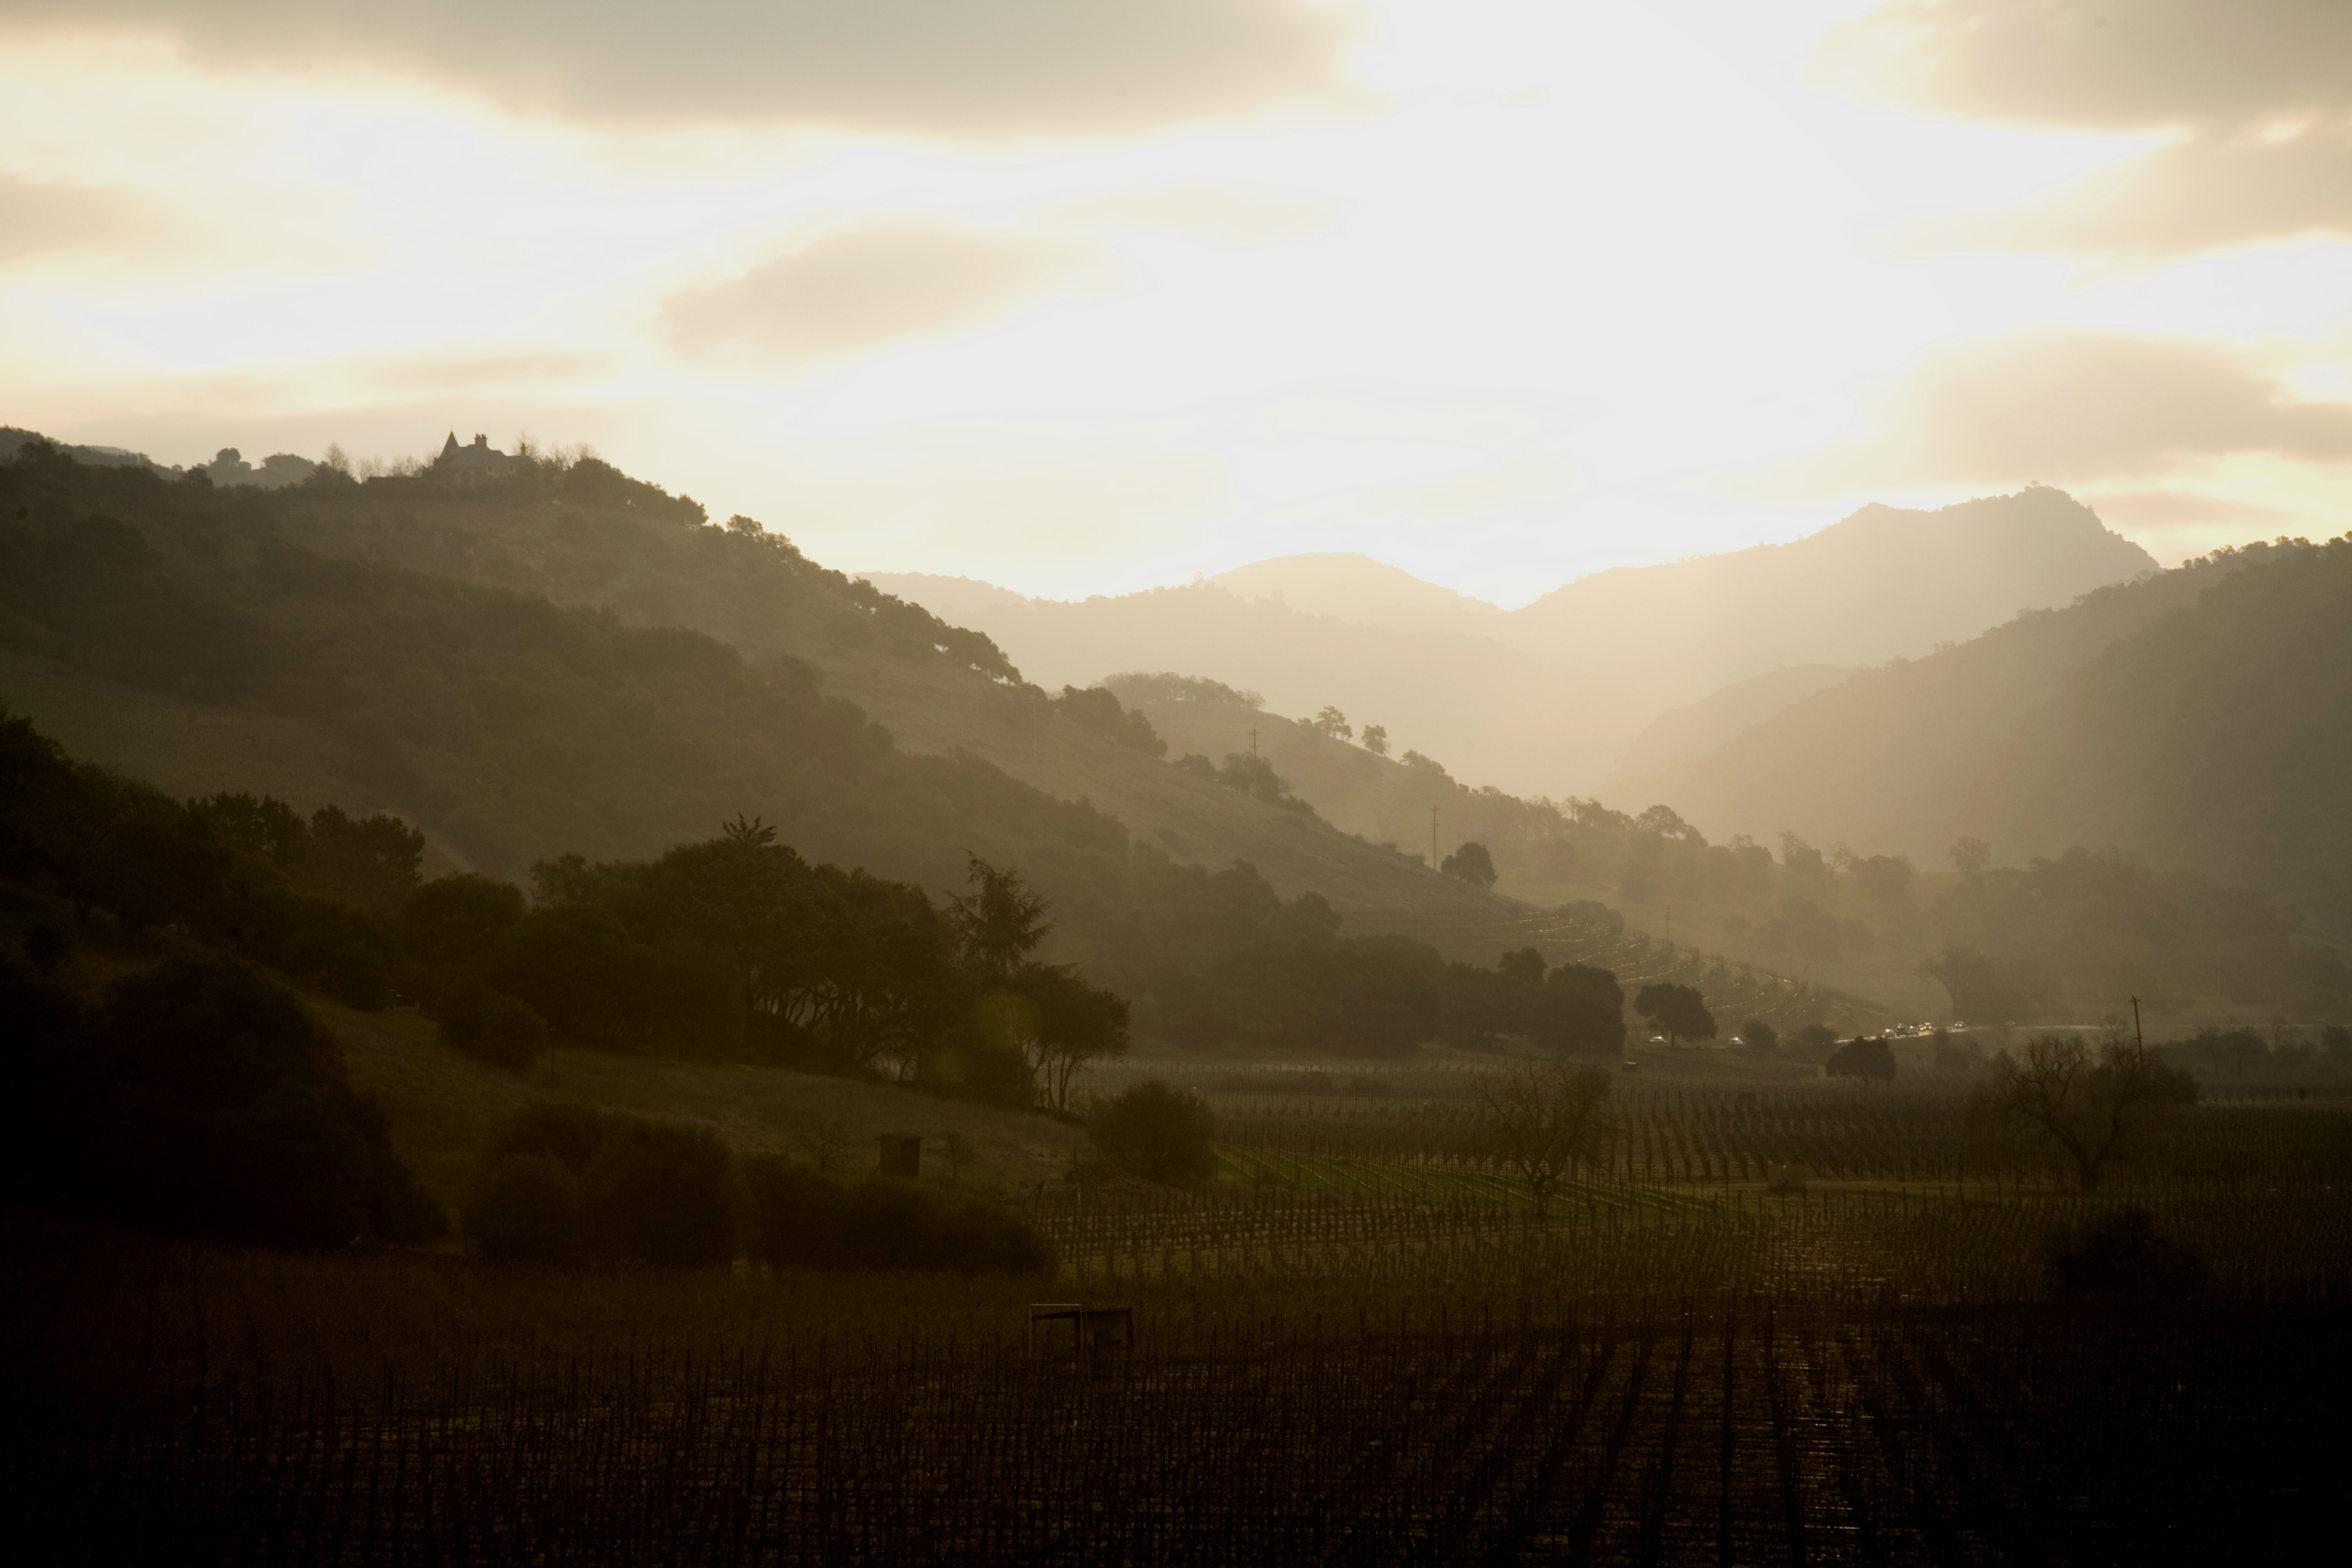 A view of the Rutherford AVA within the Napa Valley AVA.